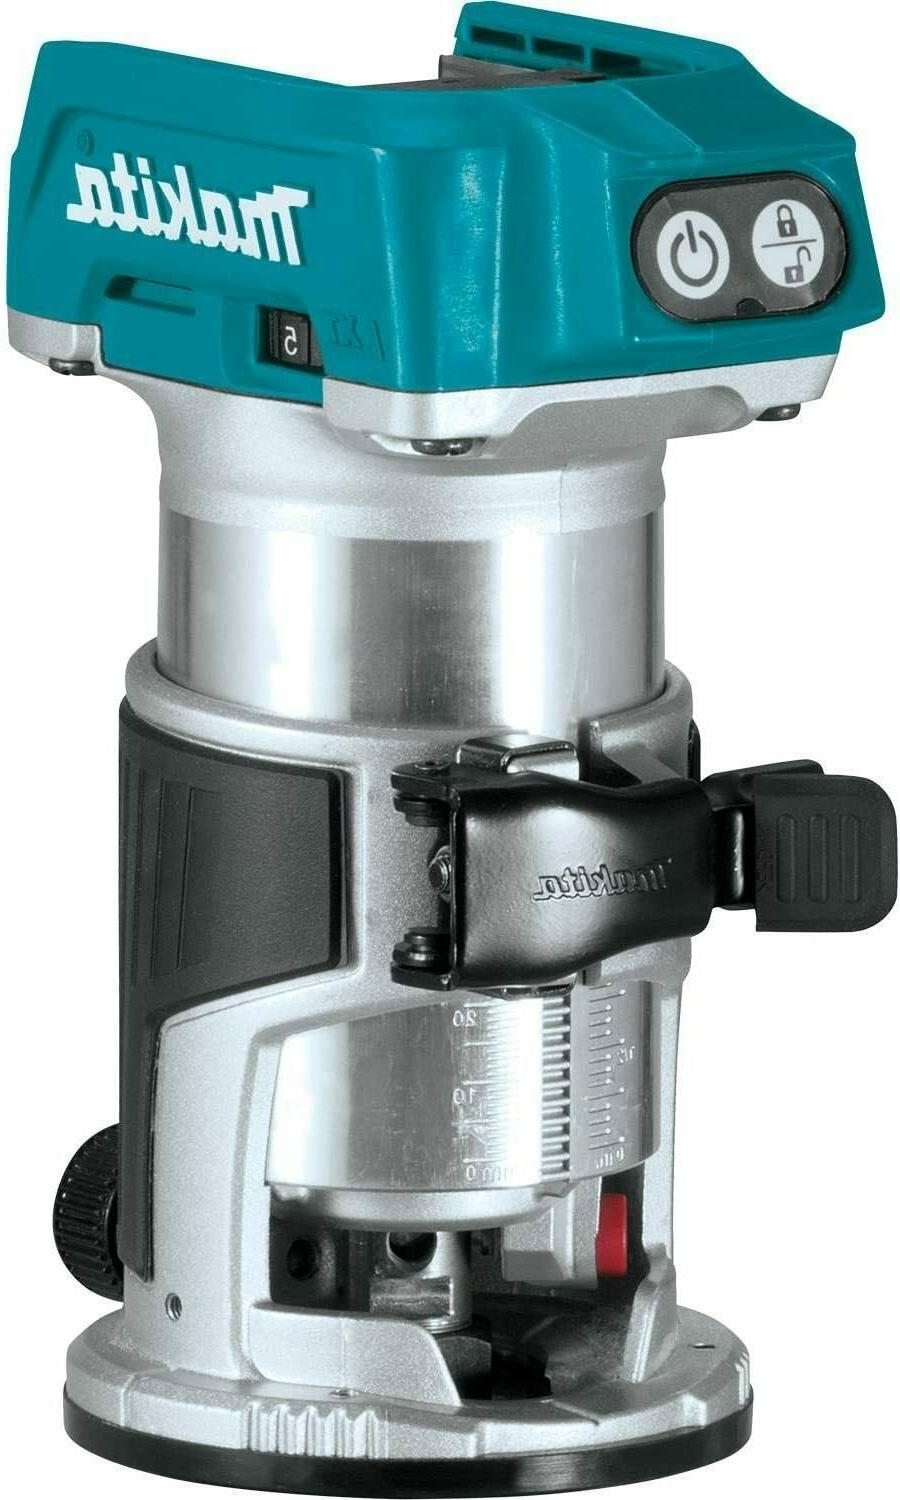 dcw600b 20v xr cordless compact router bare